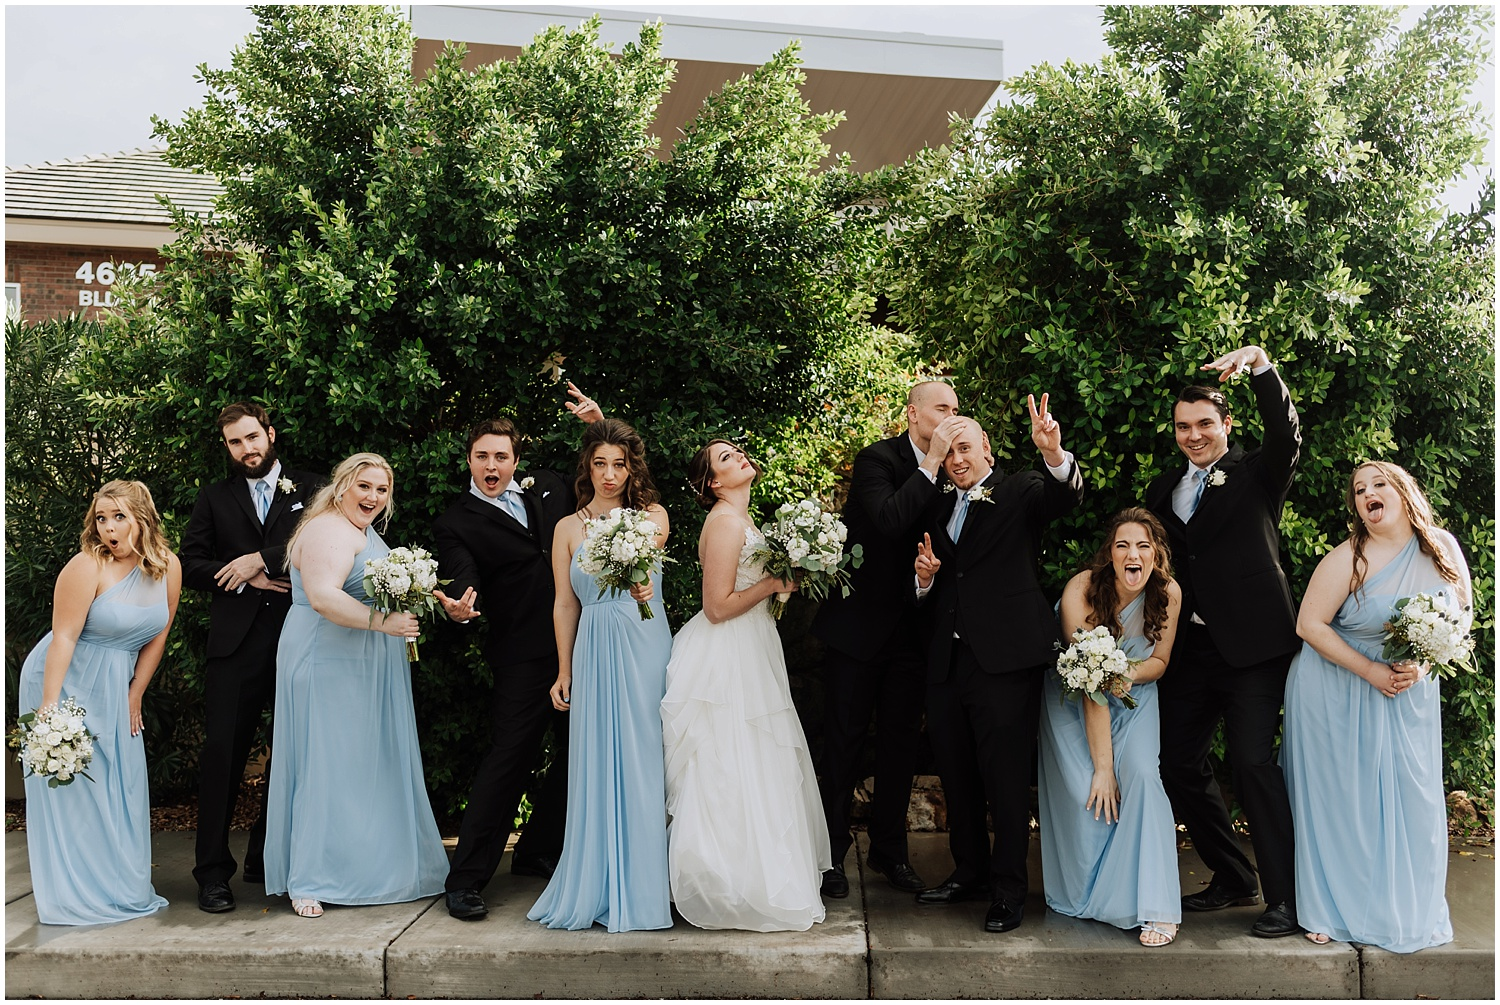 Fun Wedding Party Portraits on the Wedding Day